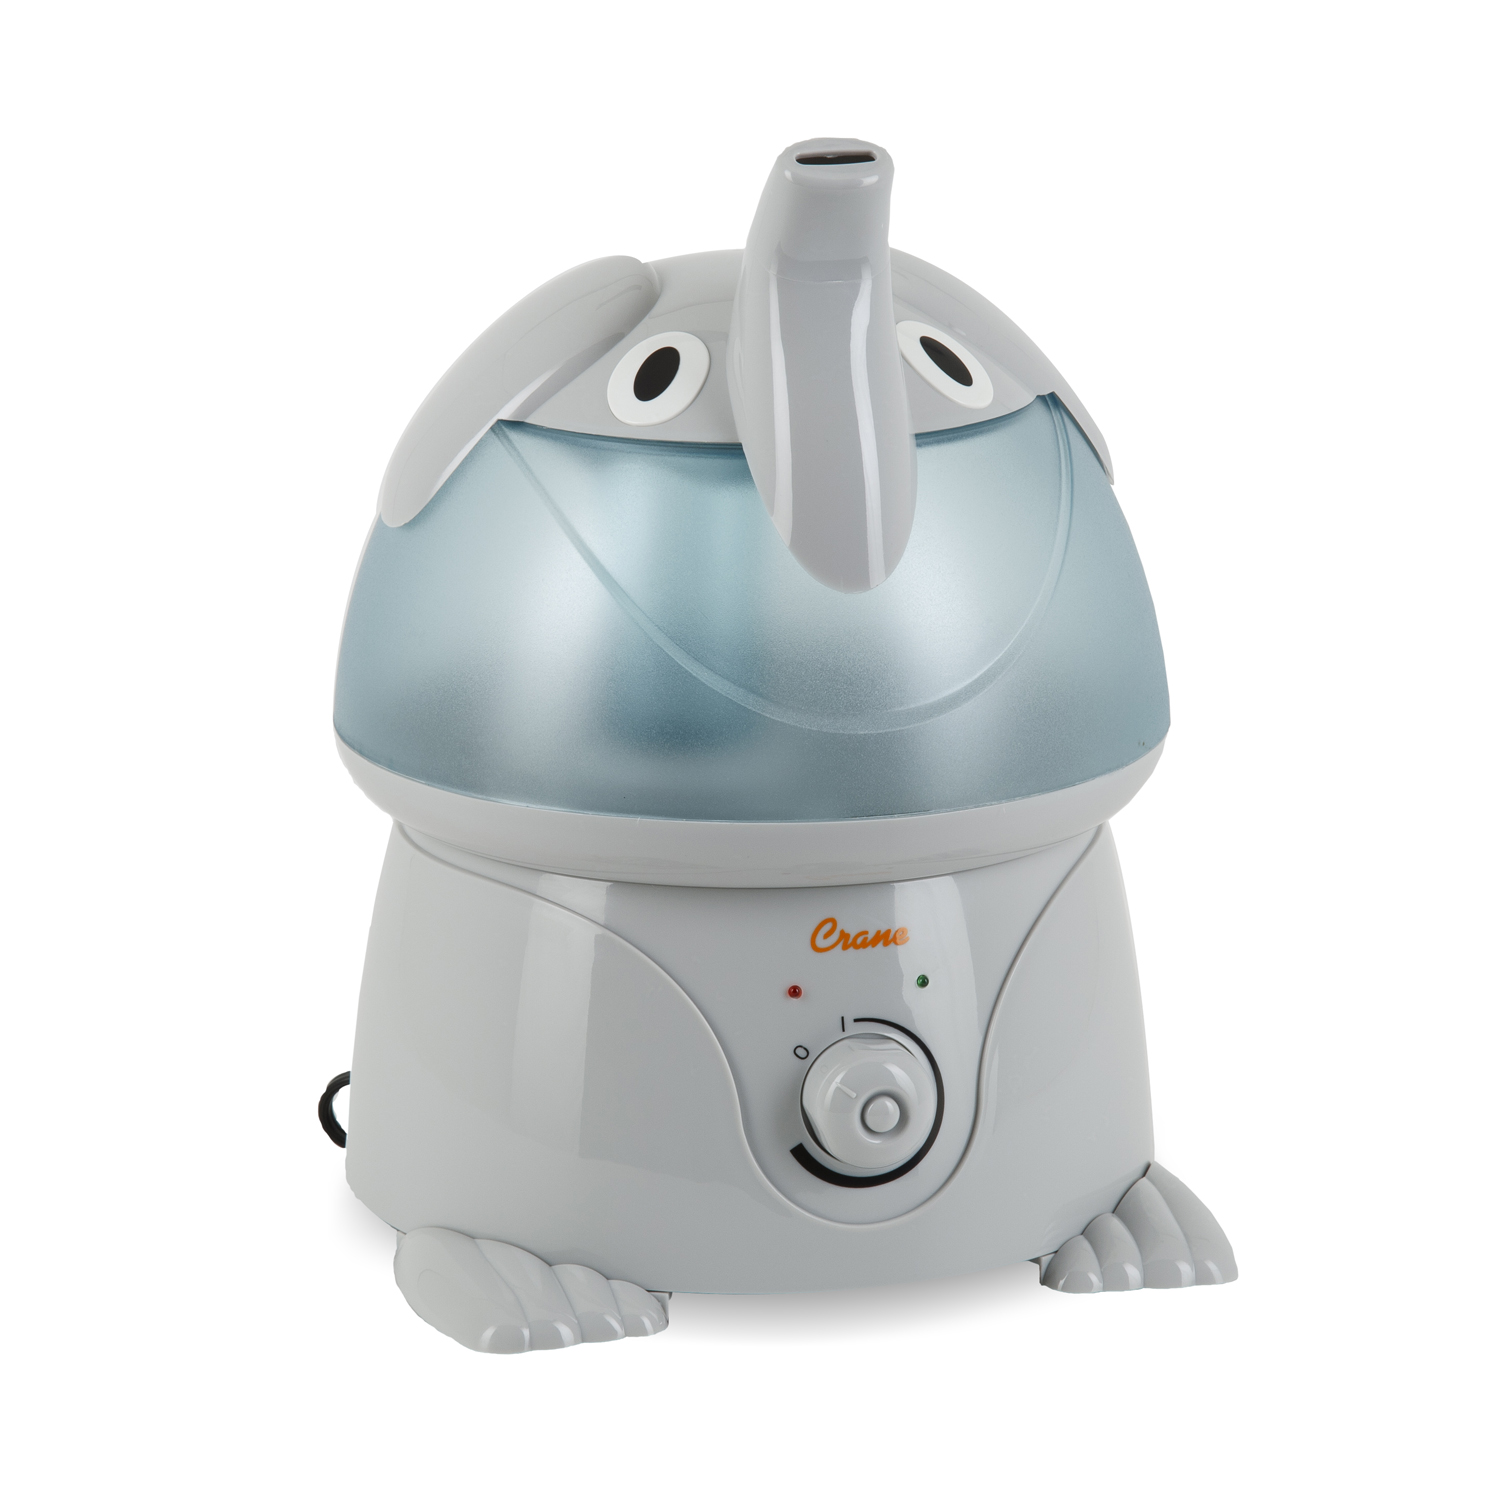 http://www.weespring.com/media/crane-adorable-humidifier-1.jpg